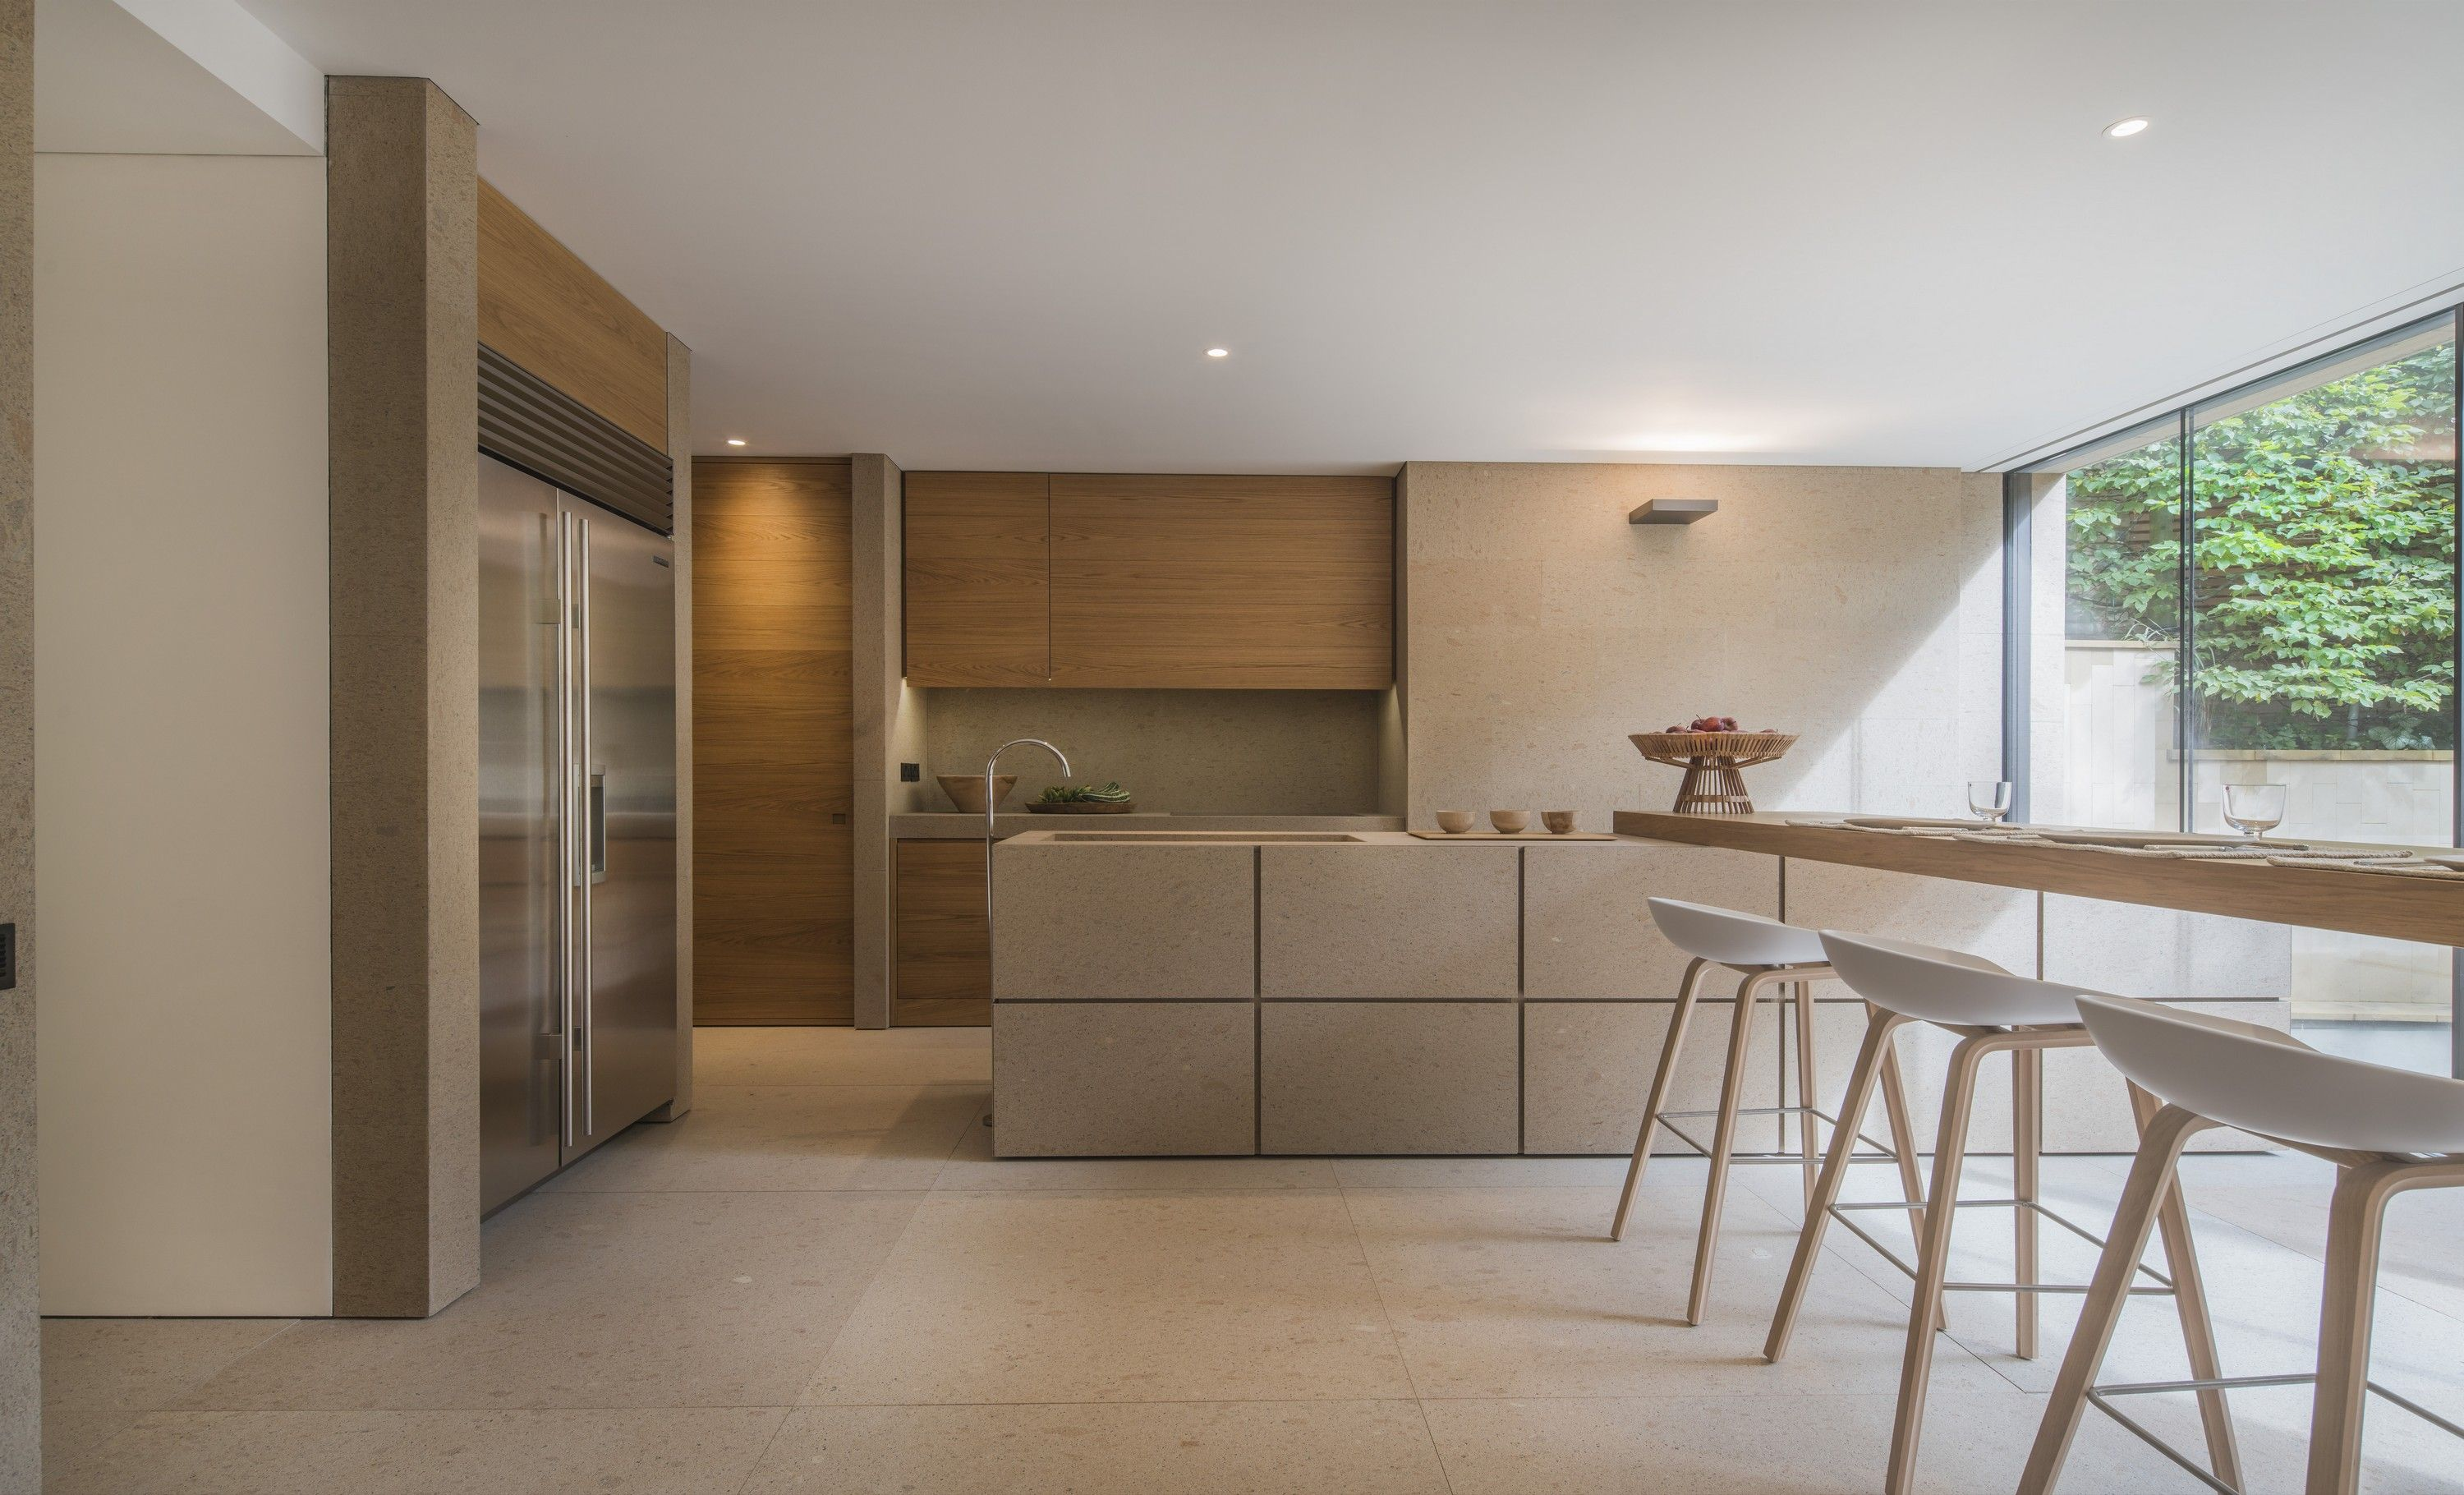 Exclusieve Wolters Keukens : Archello interieurarchitectuur pinterest interieurarchitectuur